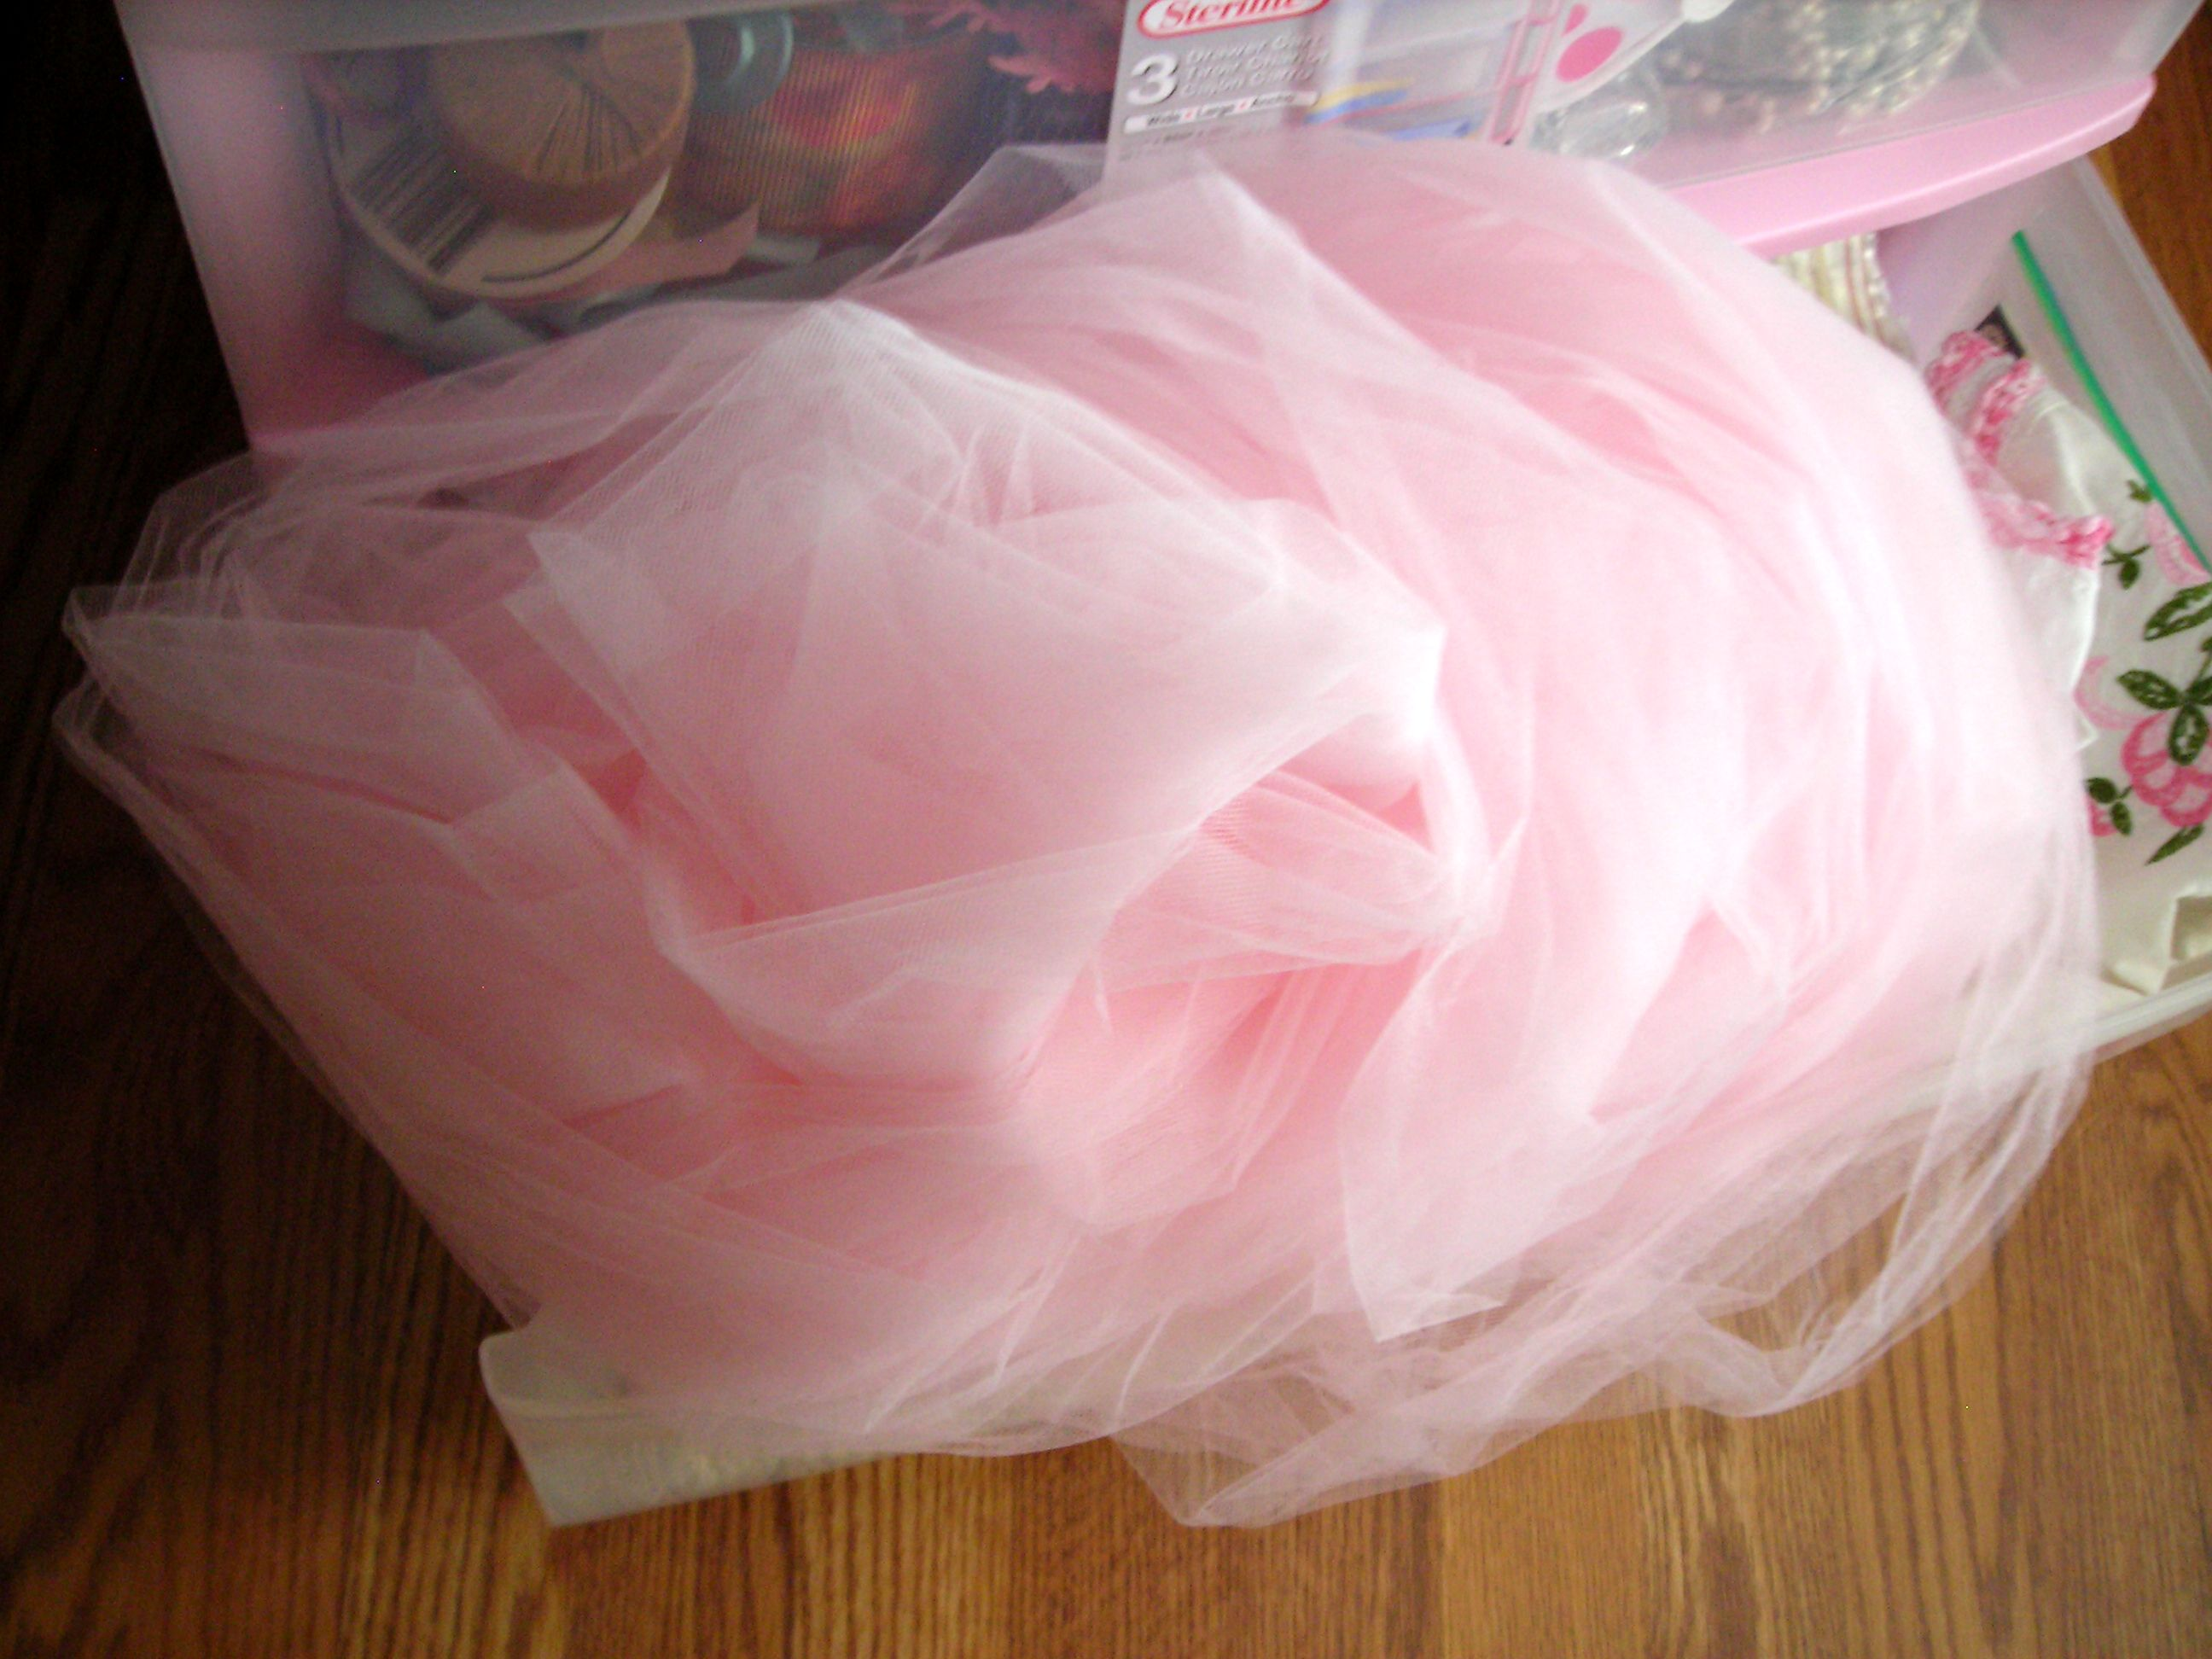 My good friend Jannetta unloaded this heap of gorgeous pink tulle on me recently. WOW!!!!! Thanks, JEB!